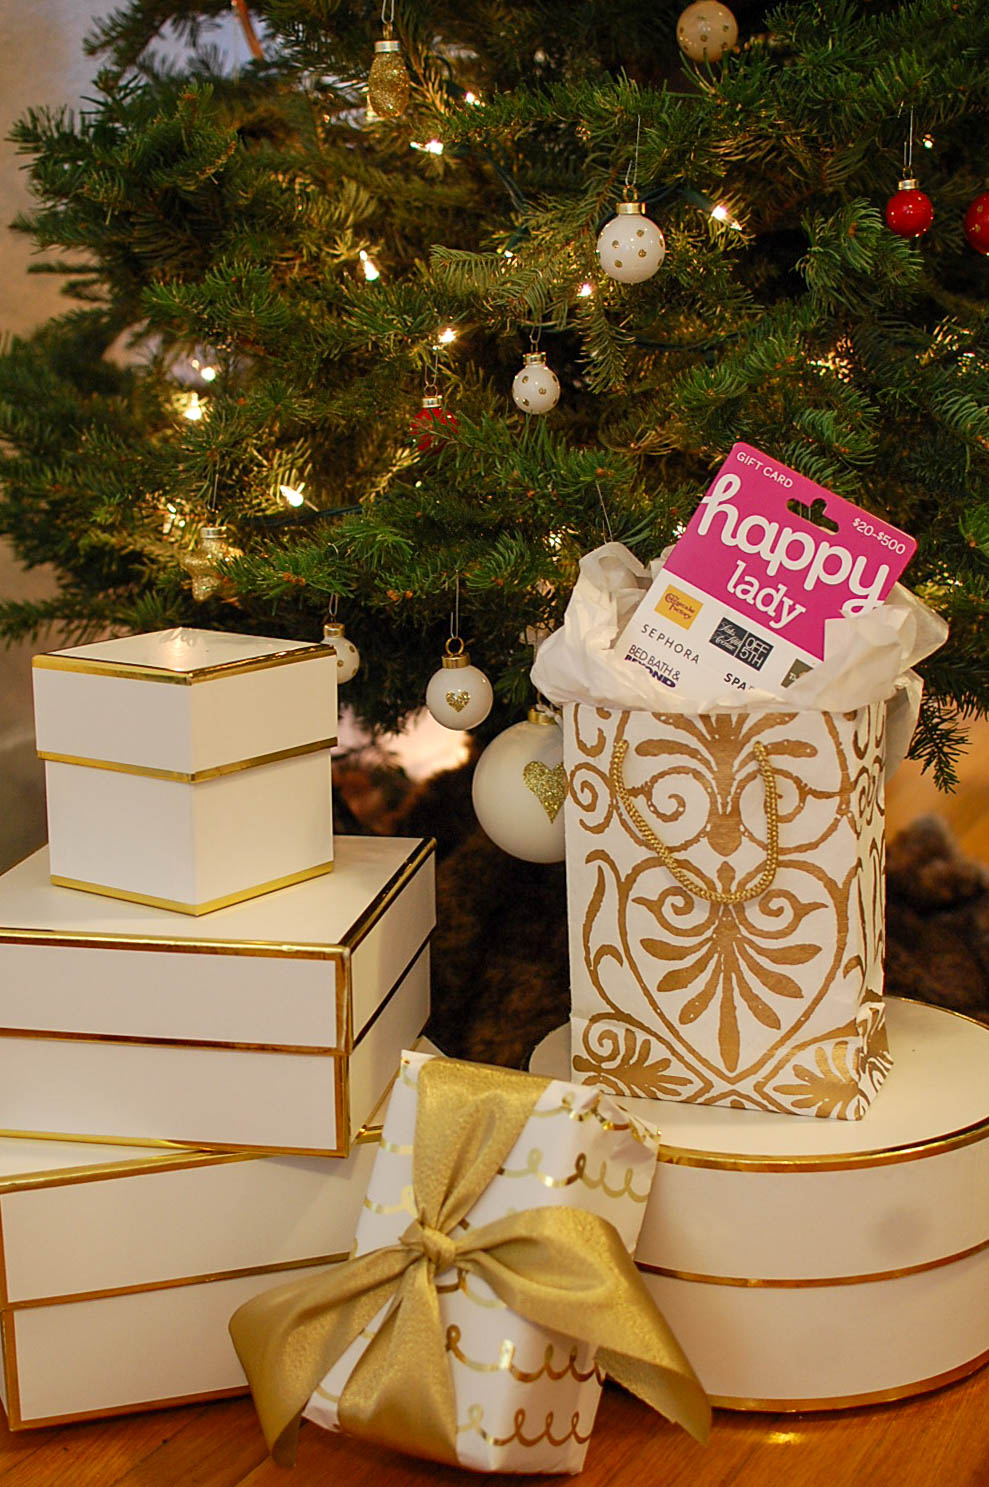 Happy Cards Make the Perfect Last Minute Gift For Nearly Everyone & Giveaway!